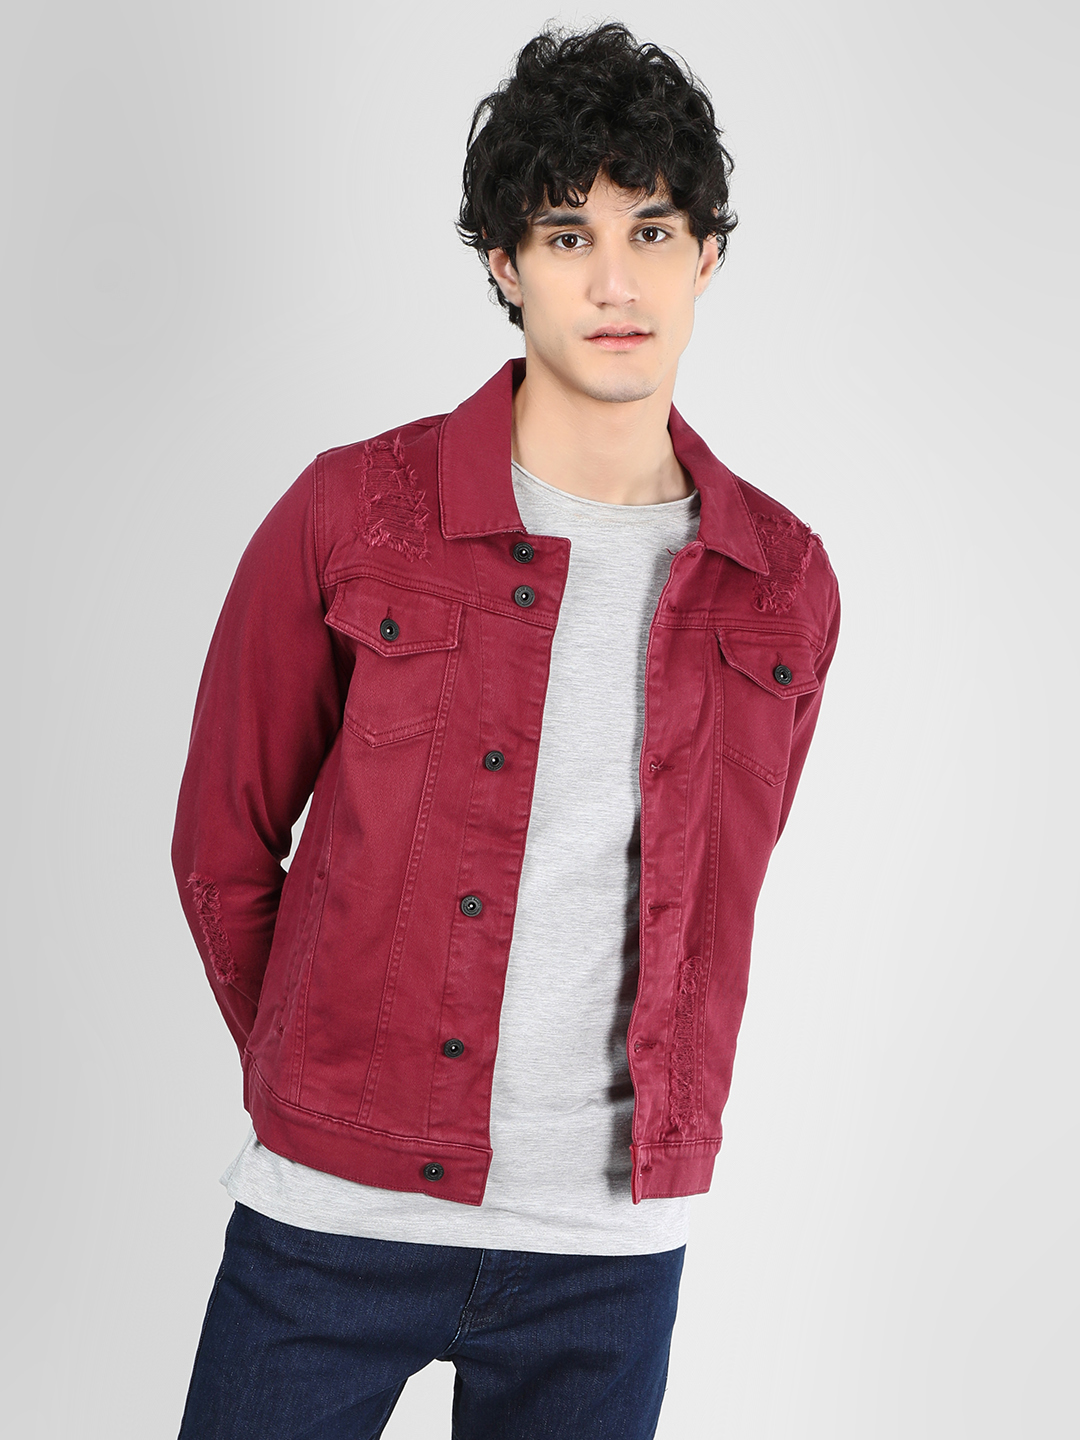 Blue Saint Red Overdyed Distressed Slim Jacket 1